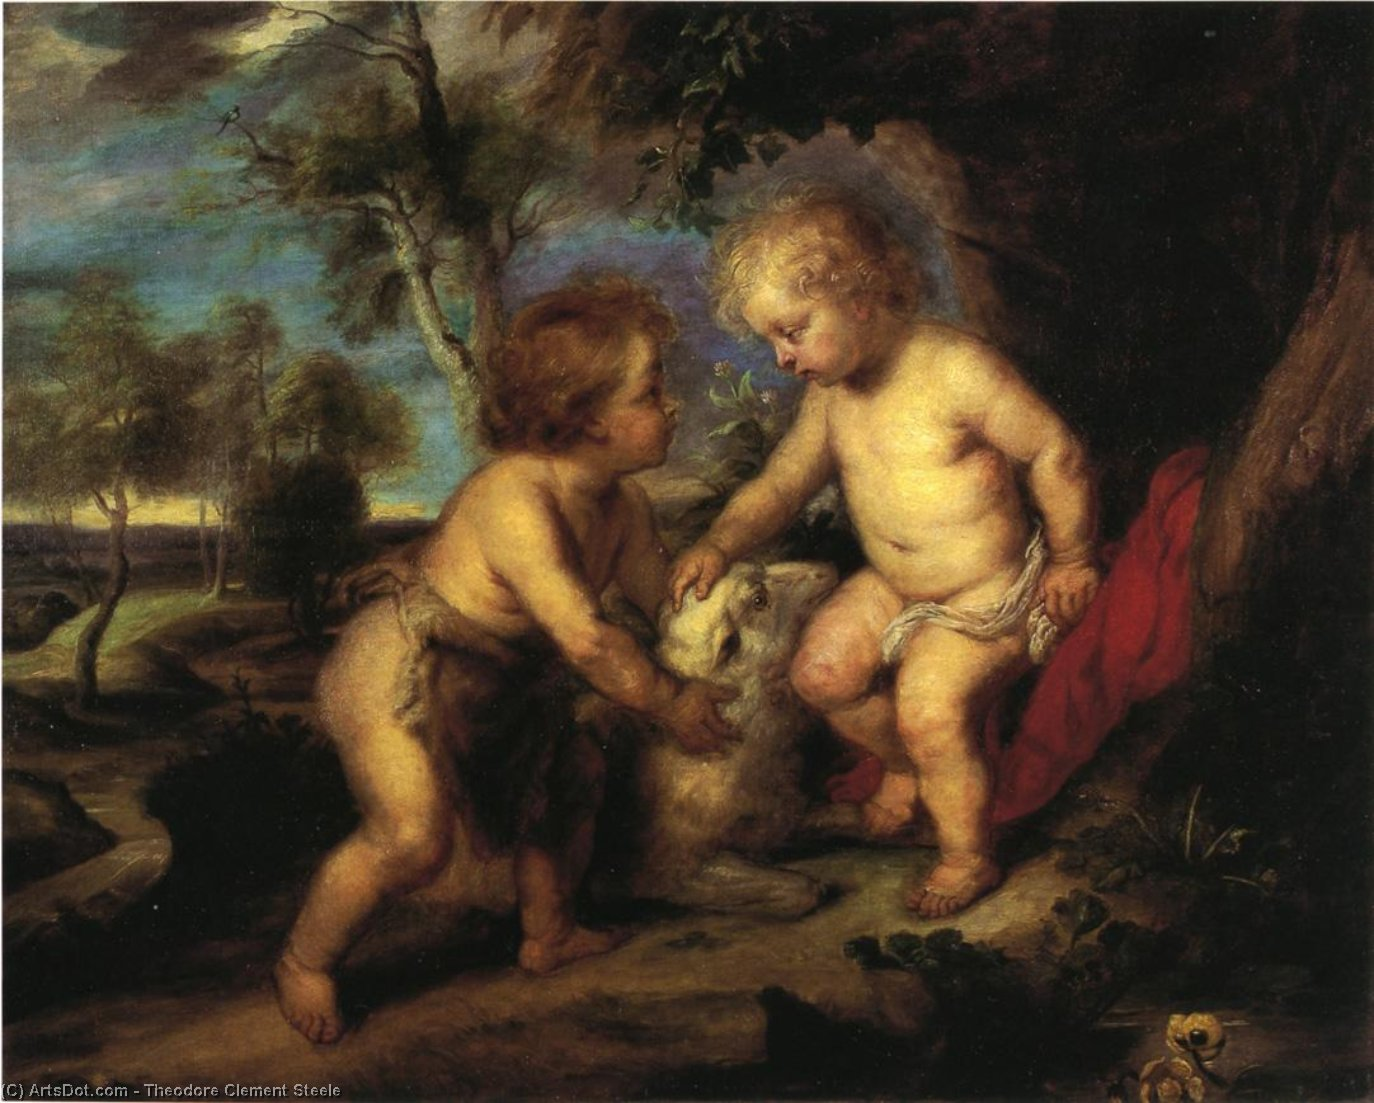 The Christ Child and the Infant St. John after Rubens, Oil On Canvas by Theodore Clement Steele (1847-1926, United States)